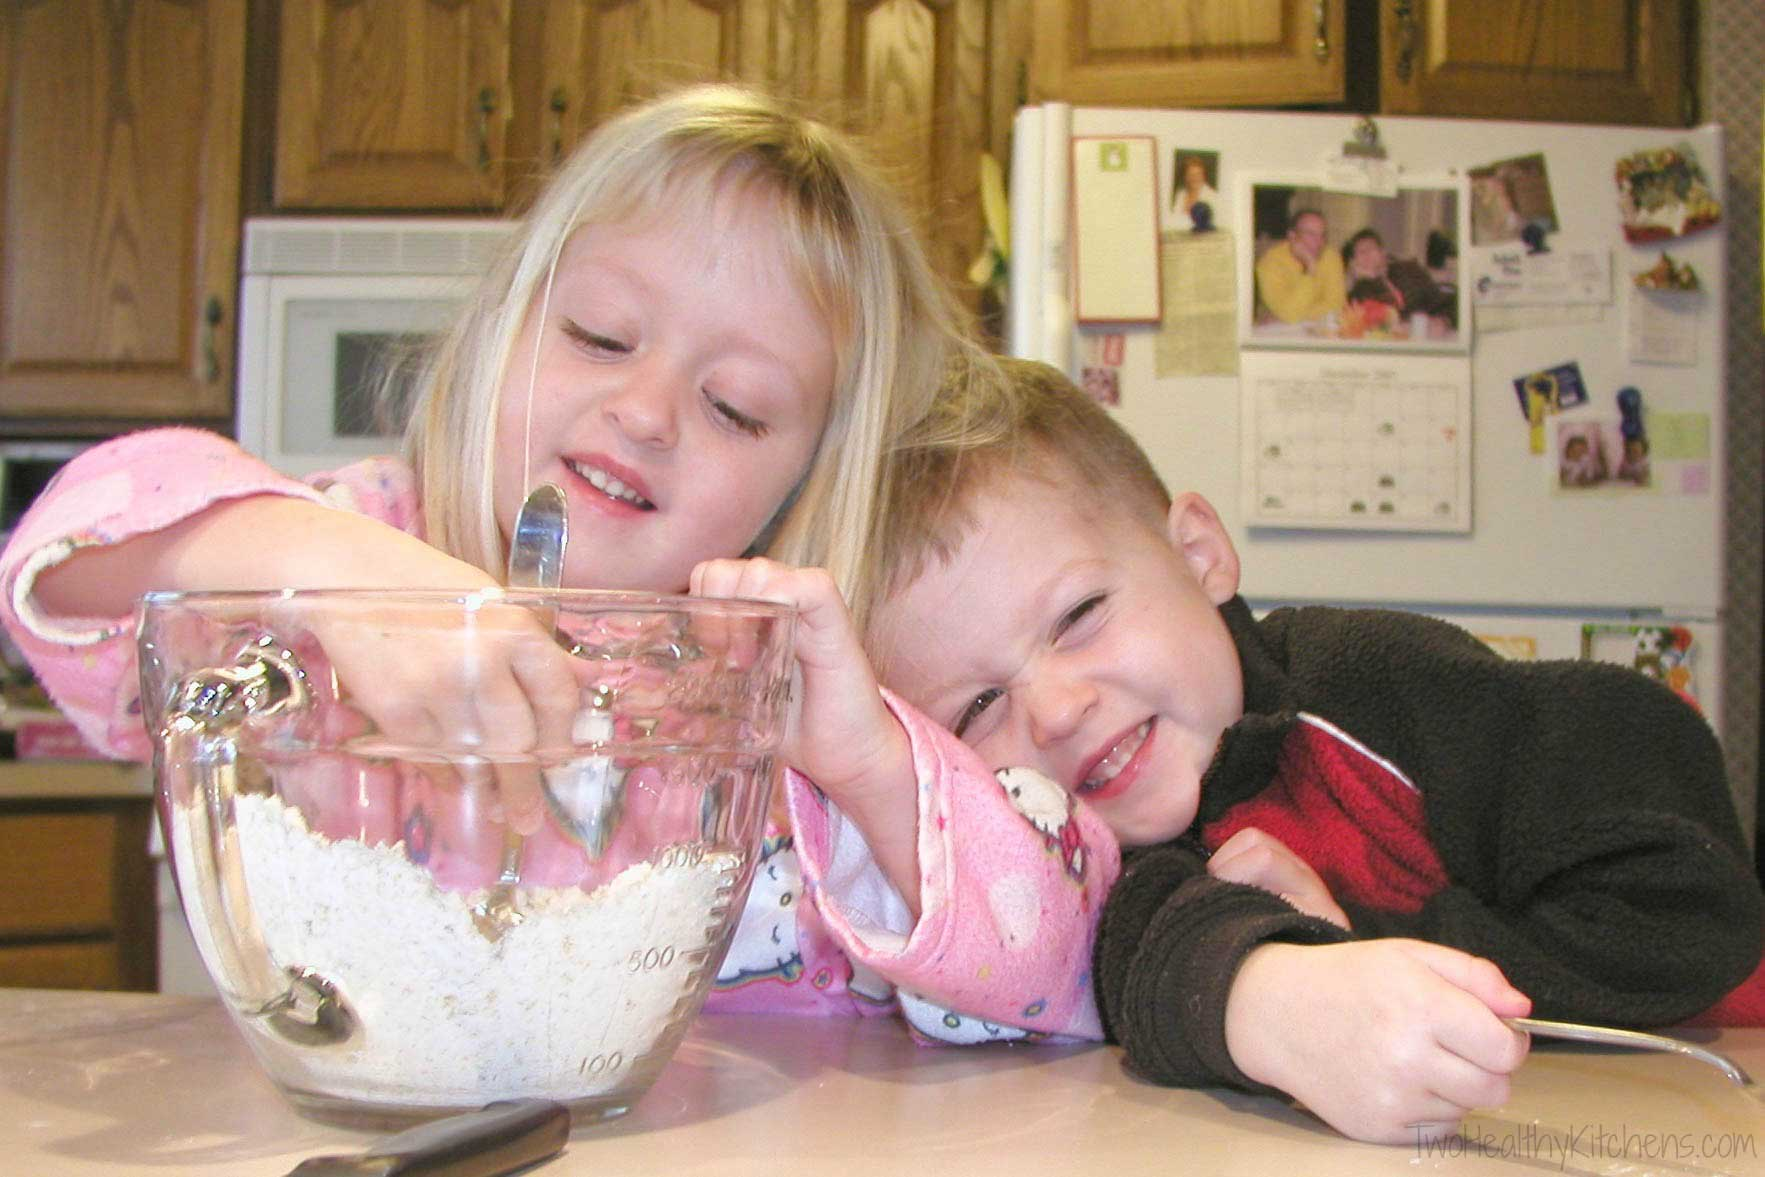 my kids giggling together as they mix ingredients together